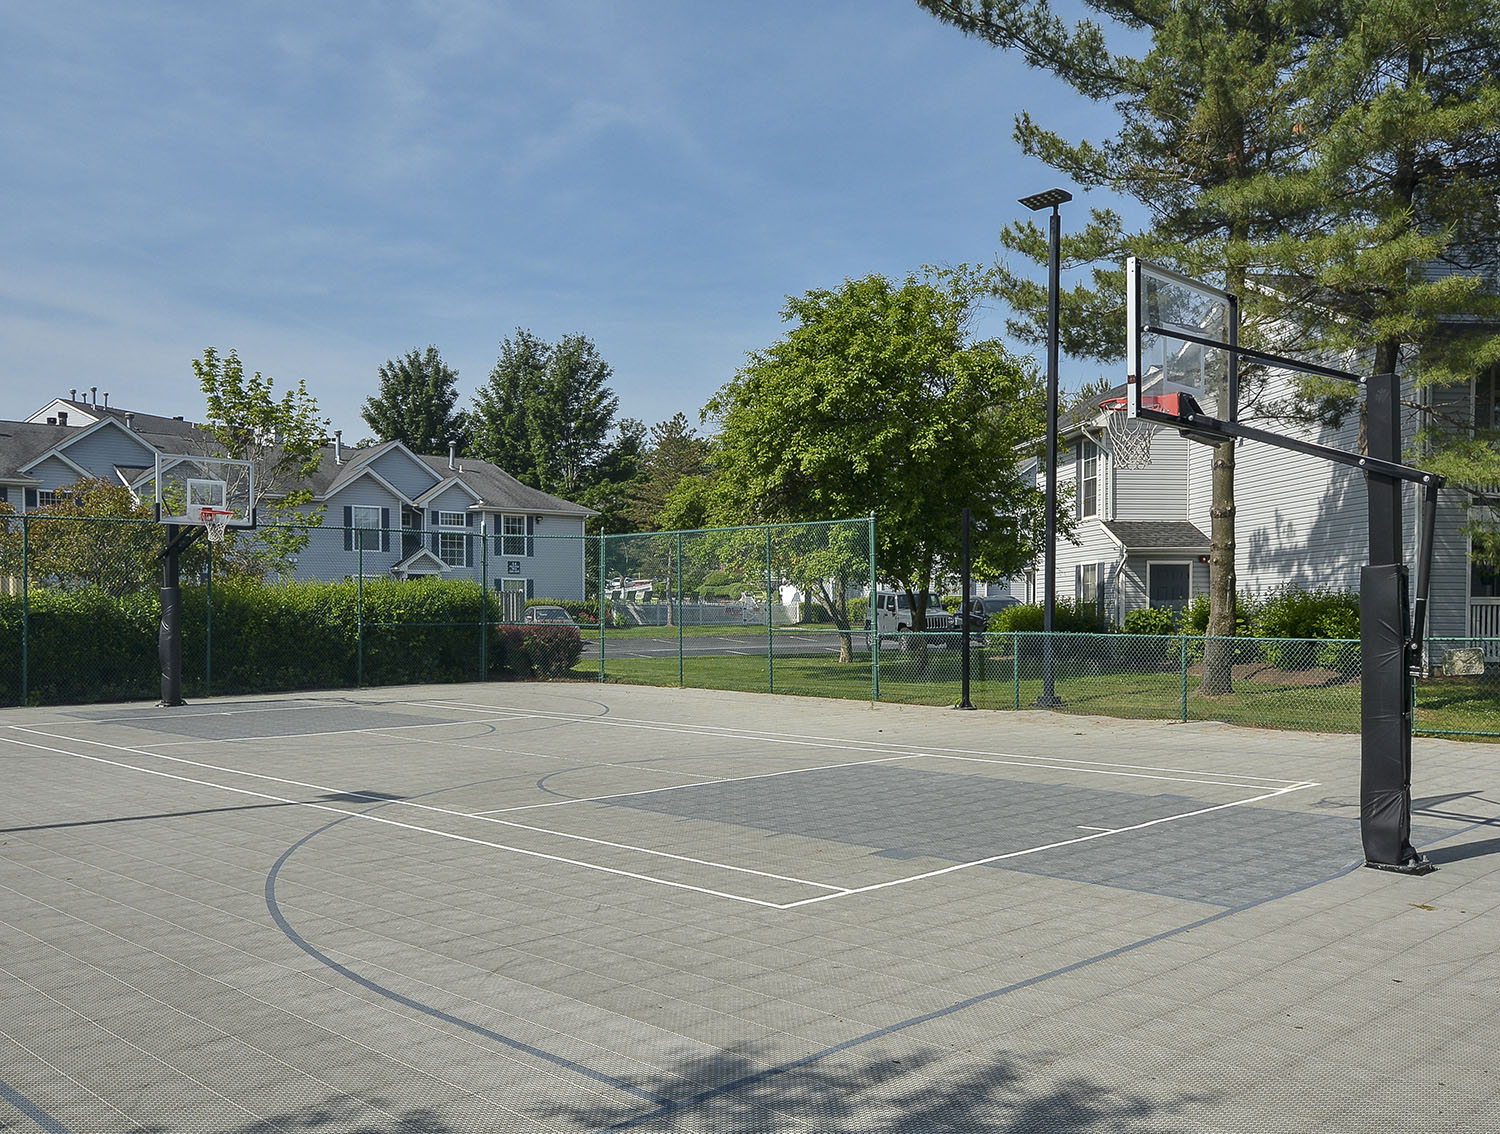 multi-sport court with basketball hoops, badminton, volleyball and tennis